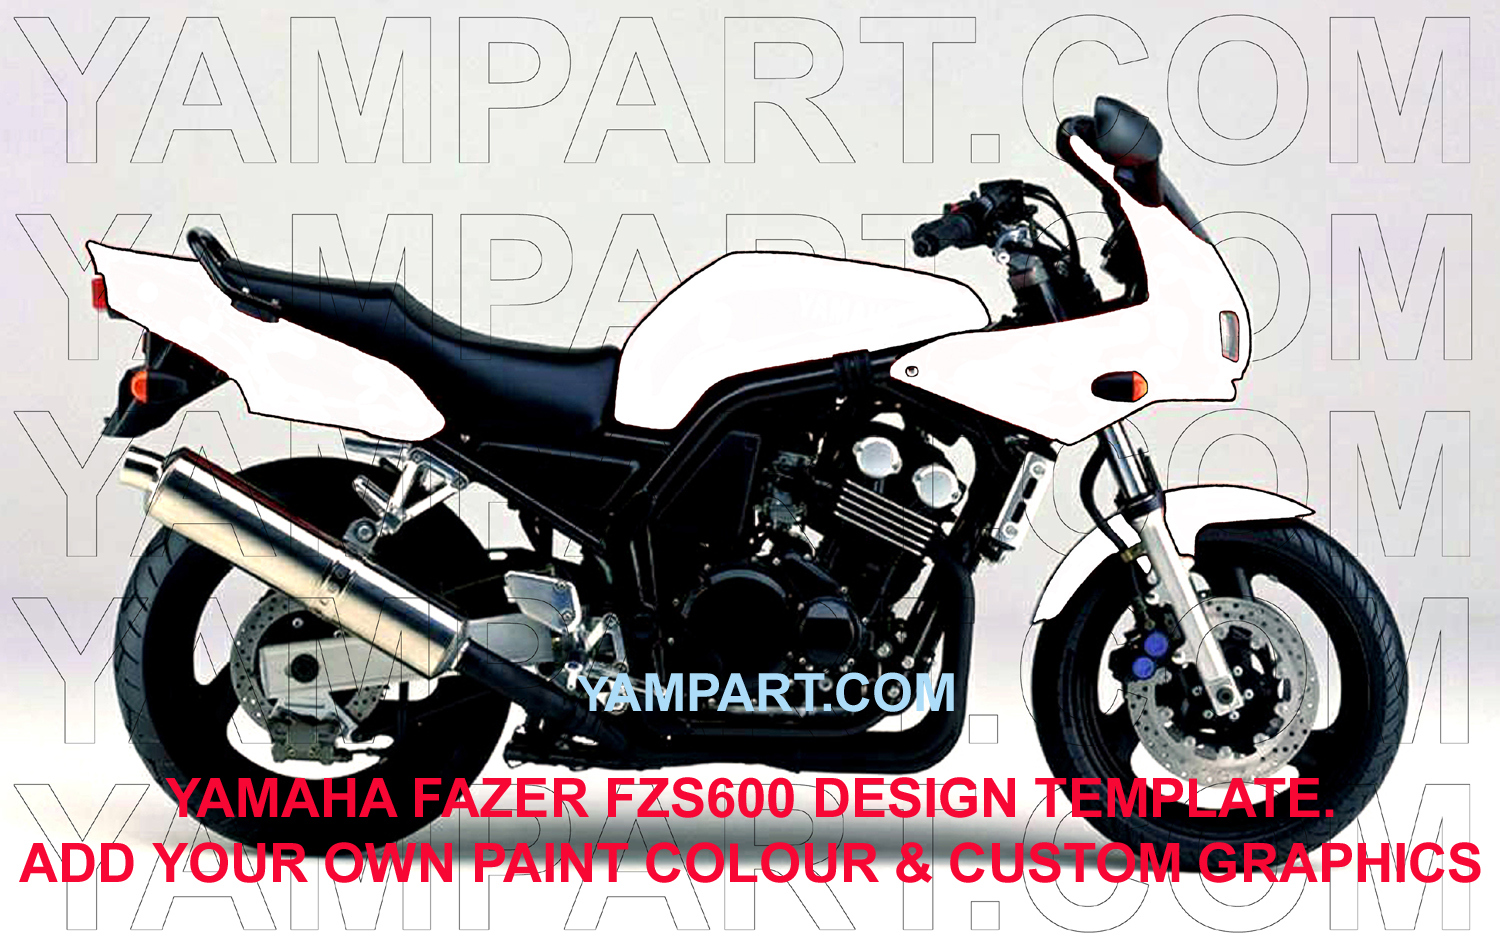 YAMAHA FAZER FZS600 CUSTOM GRAPHICS STICKERS PAINT JOB DESIGN TEMPLATE YAMPART.COM